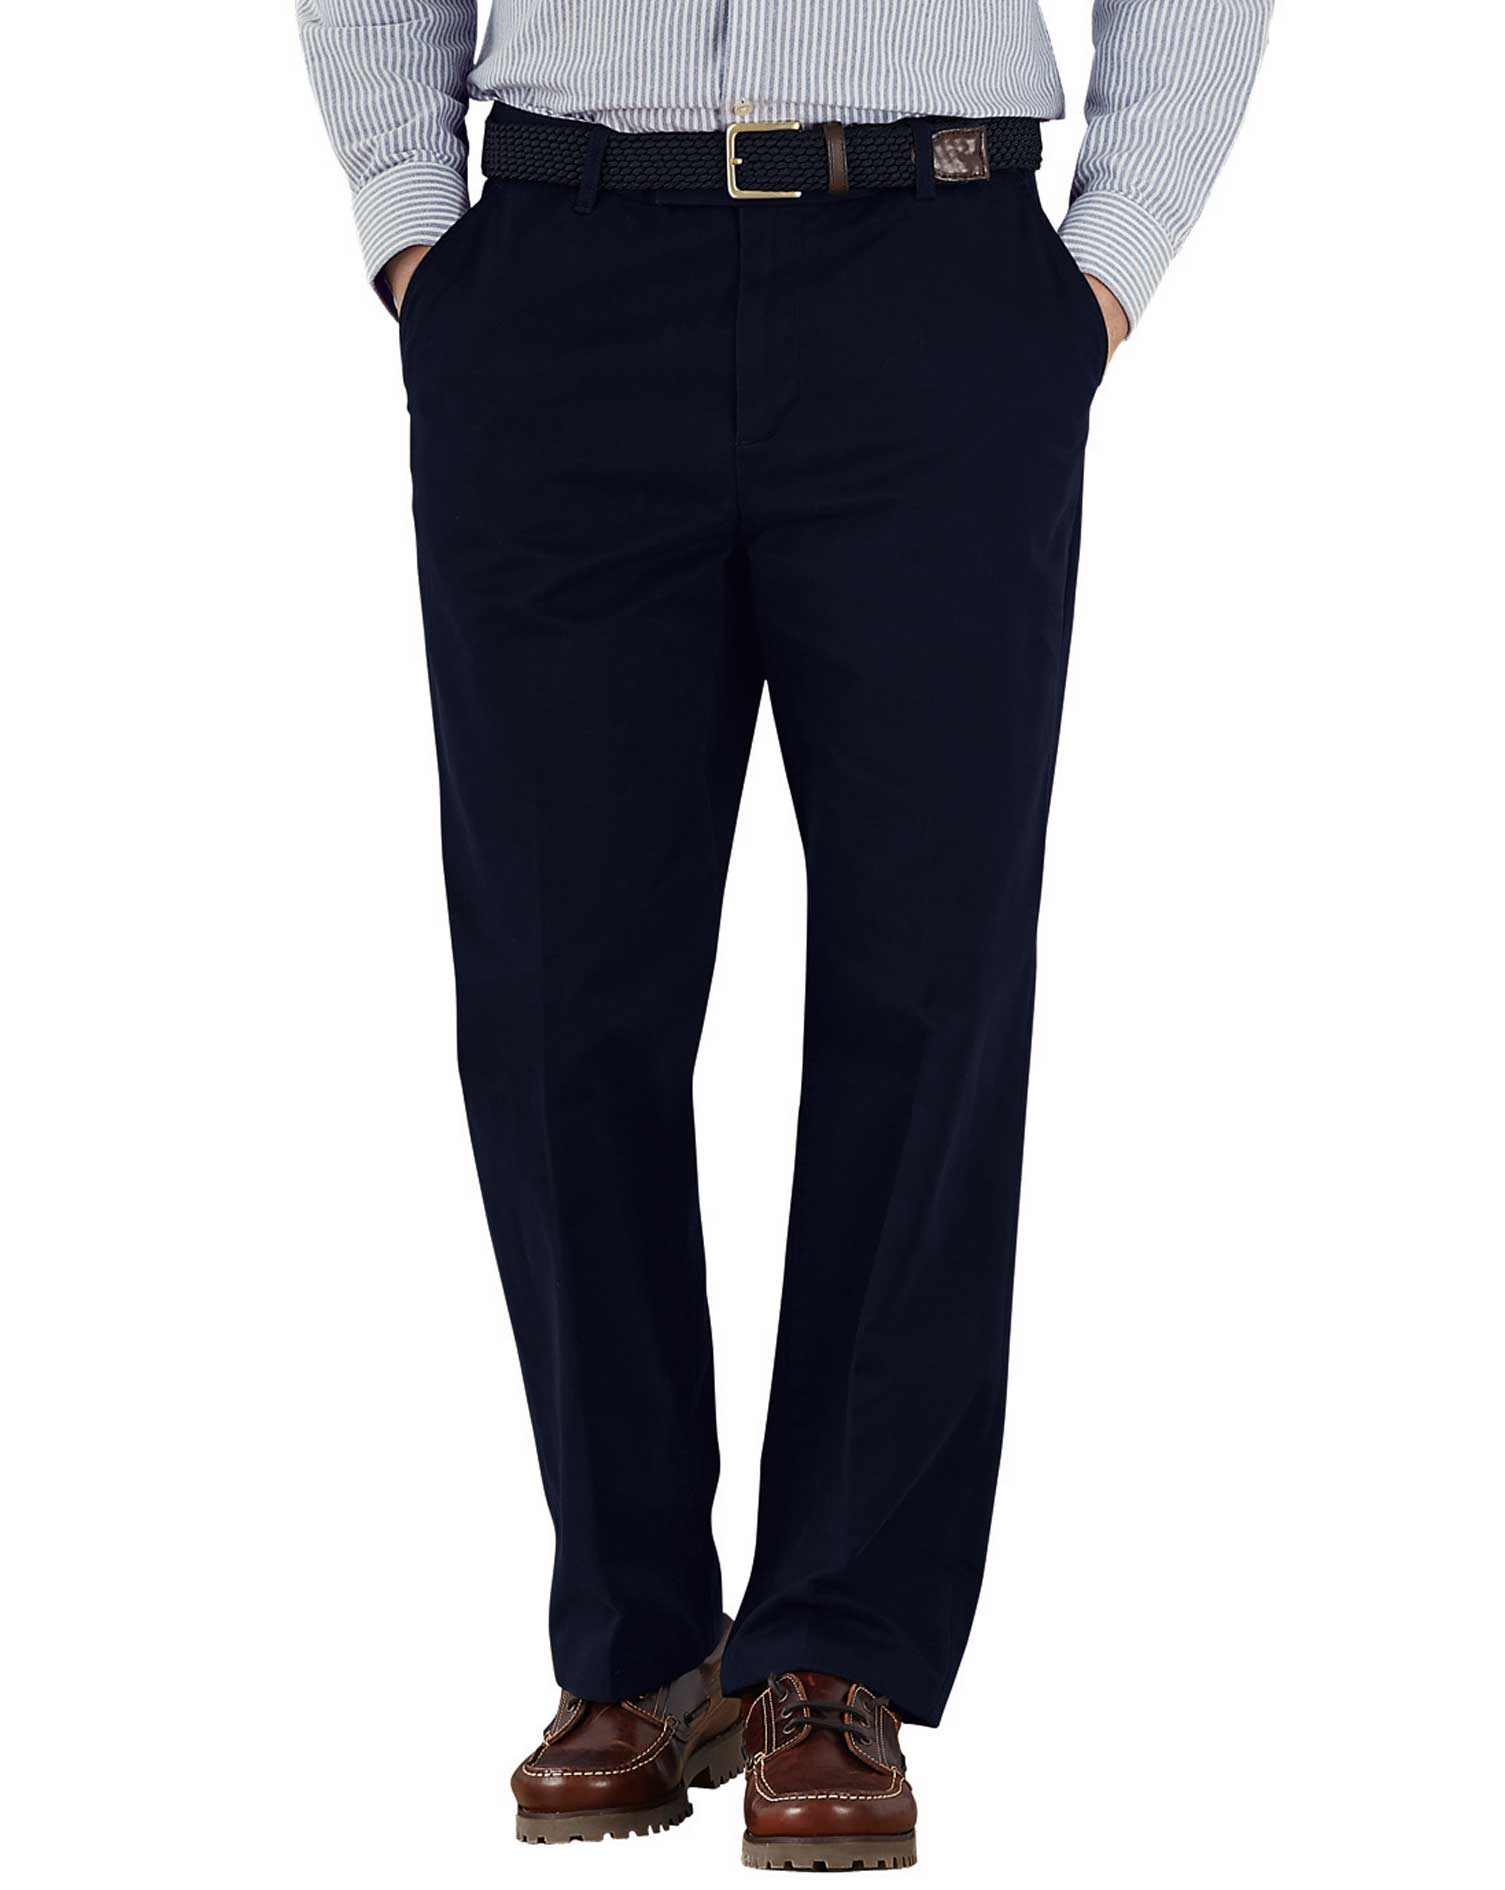 Navy Classic Fit Flat Front Washed Cotton Chino Trousers Size W42 L32 by Charles Tyrwhitt